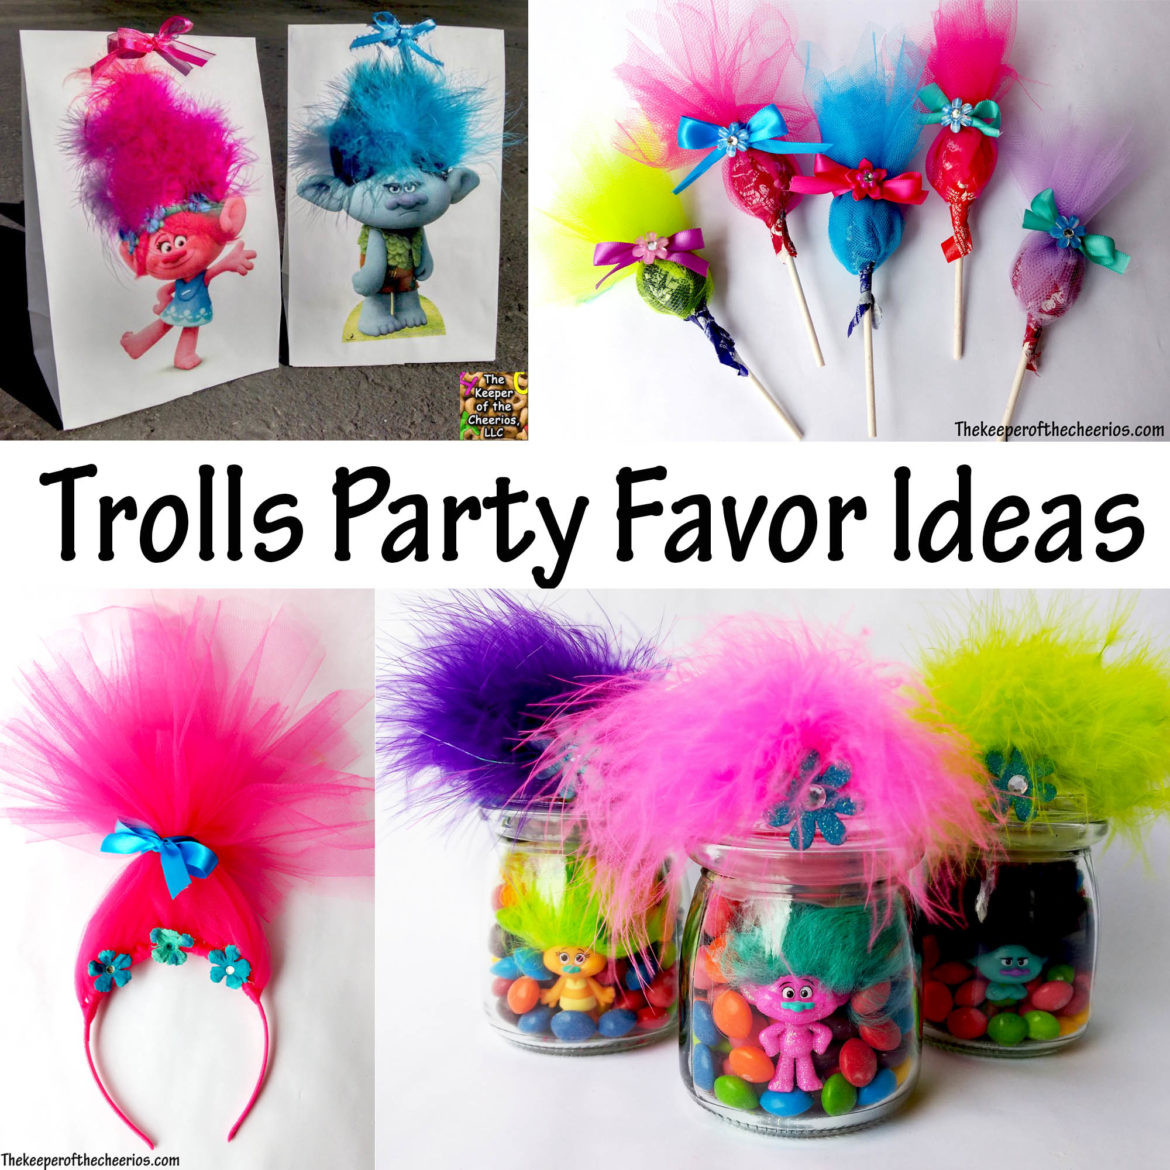 Trolls Party Favor Ideas  Trolls Party Favor Ideas The Keeper of the Cheerios